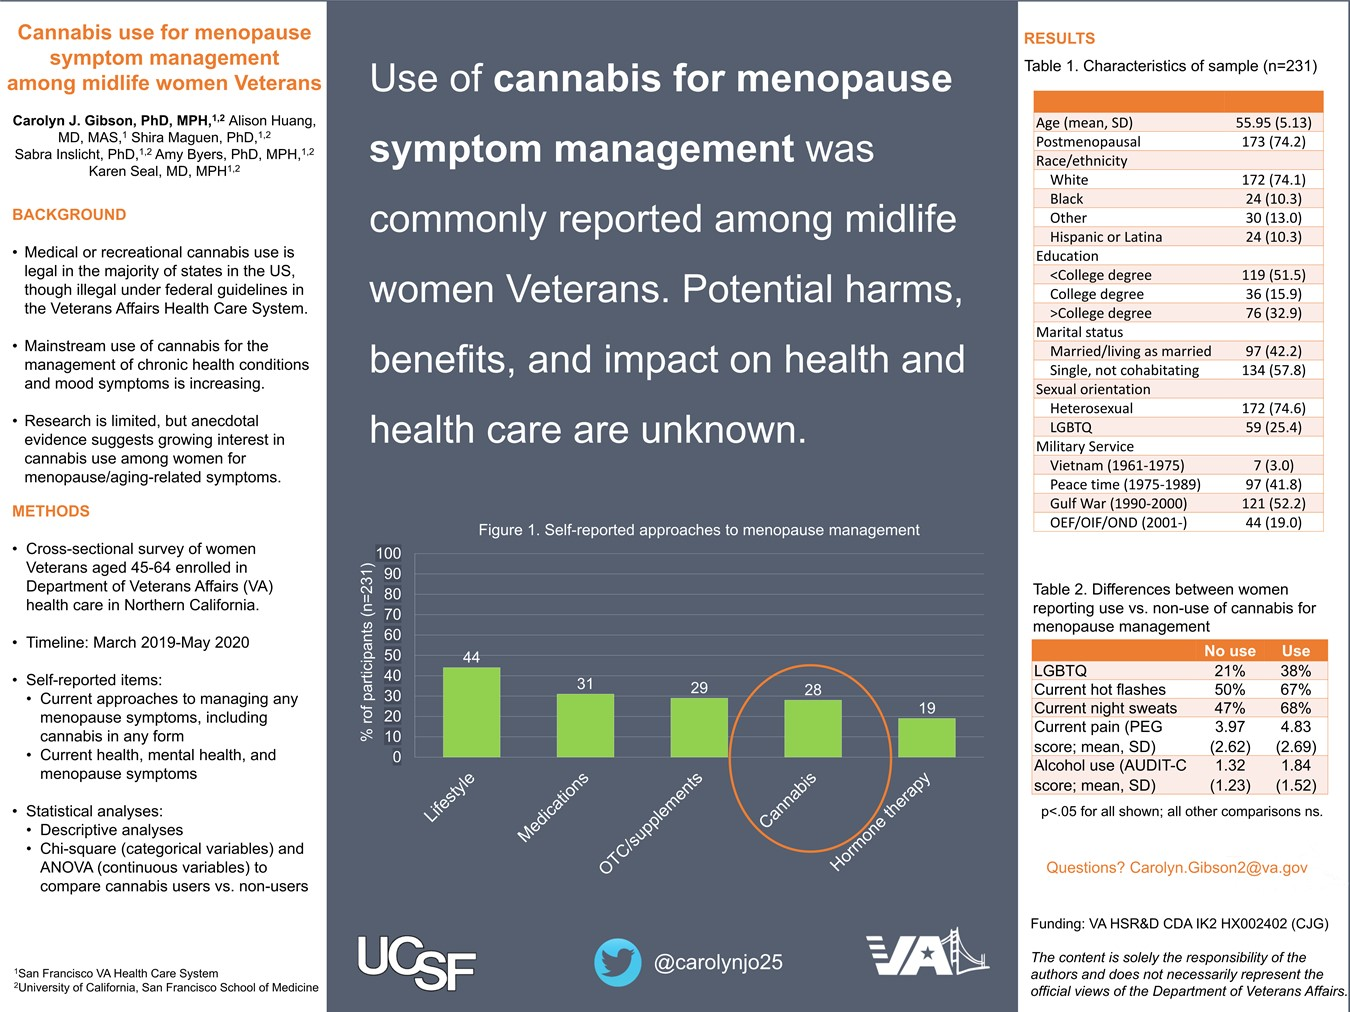 Cannabis use for menopause symptom management among midlife women Veterans